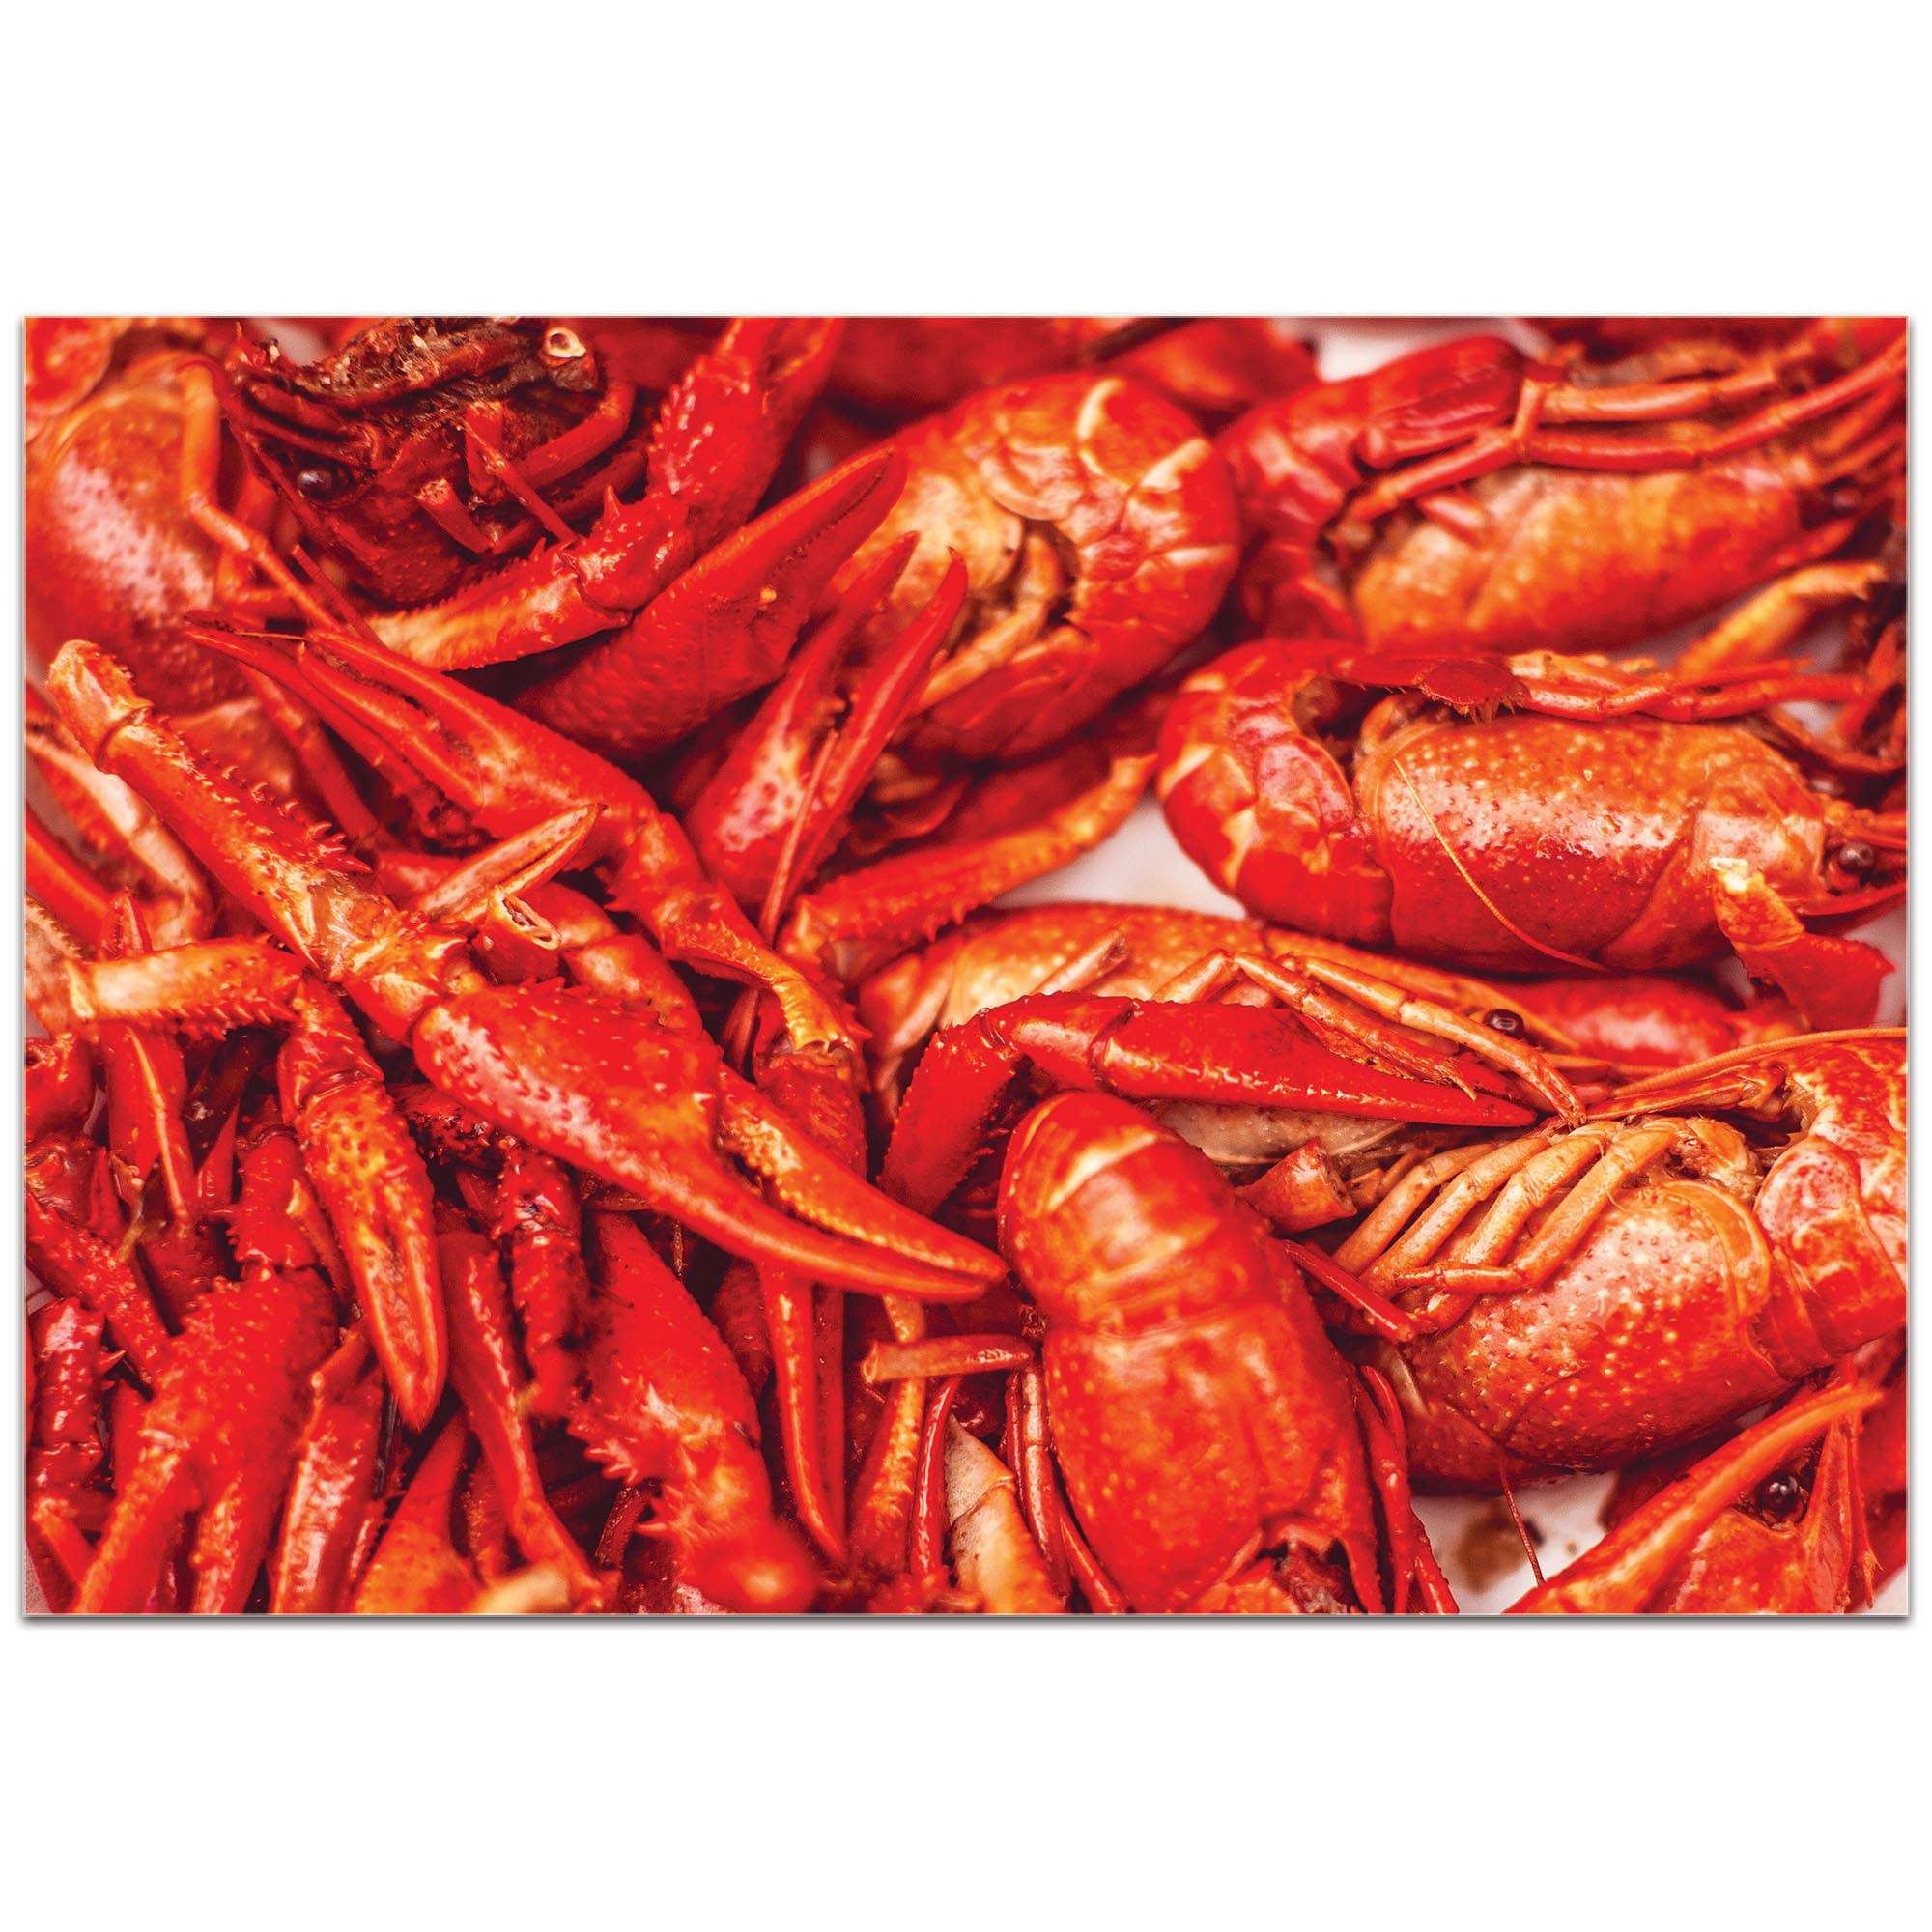 Coastal Wall Art 'Crawfish Supper' - Crayfish Boil Decor on Metal or Plexiglass - Image 2